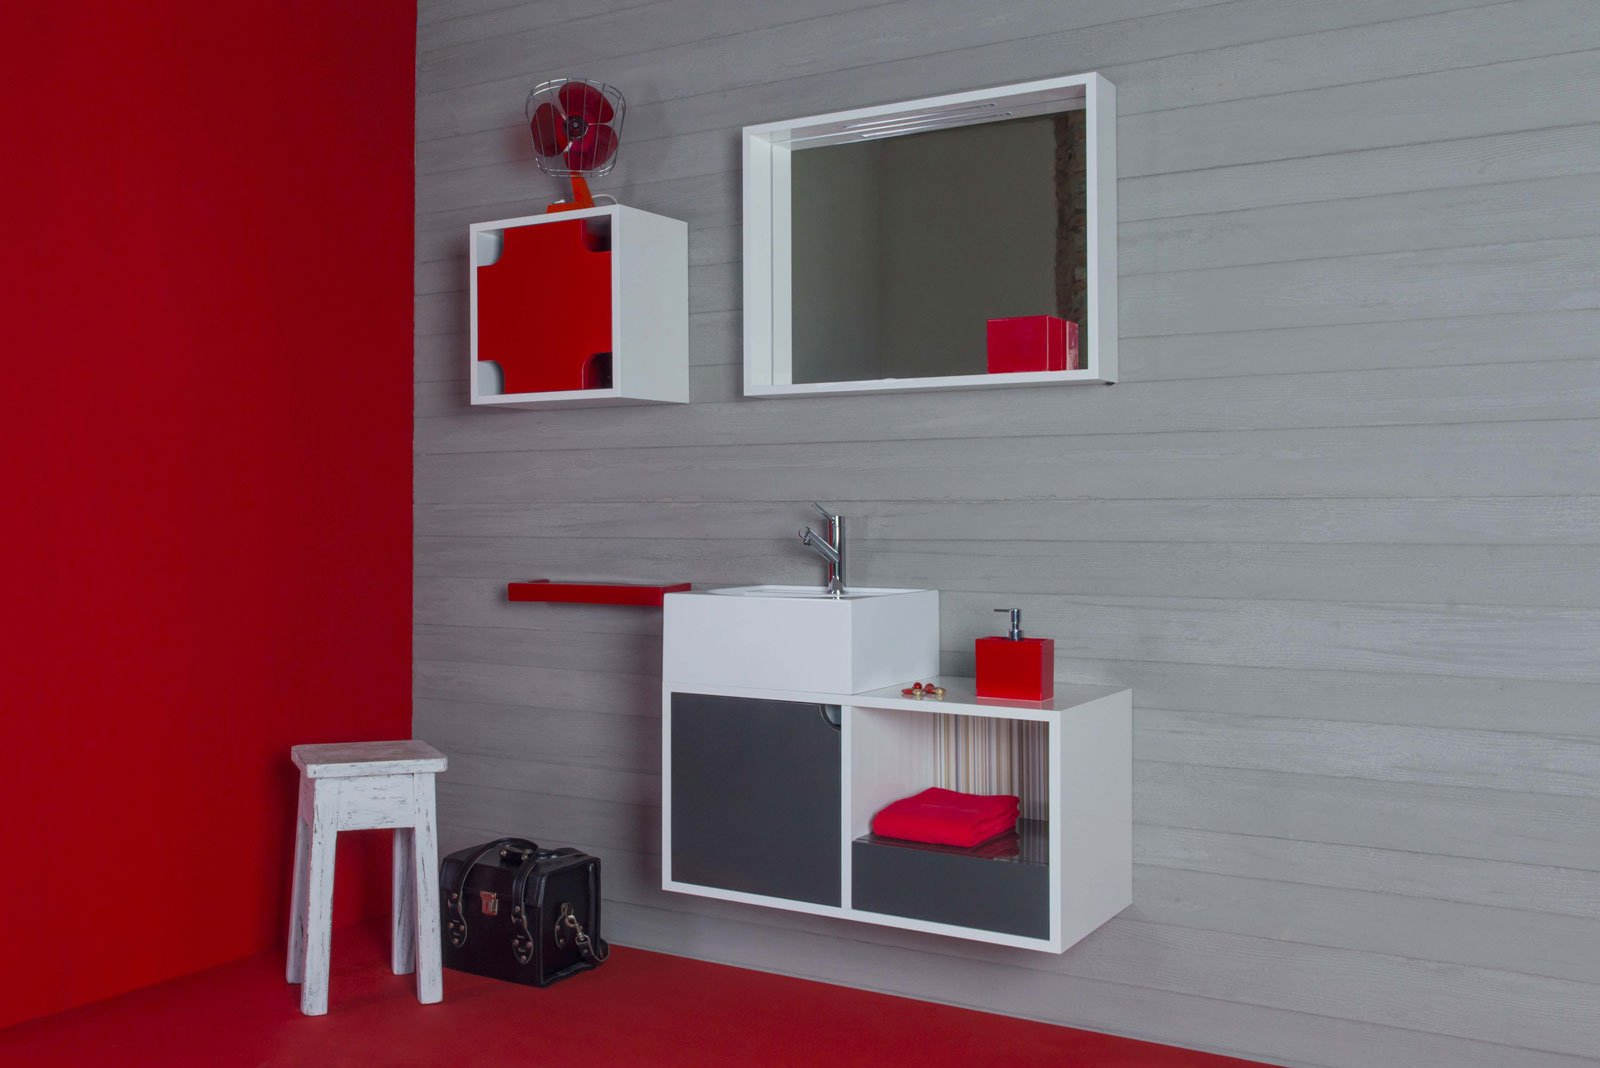 Mobile lavabo bagno ikea ~ avienix.com for .